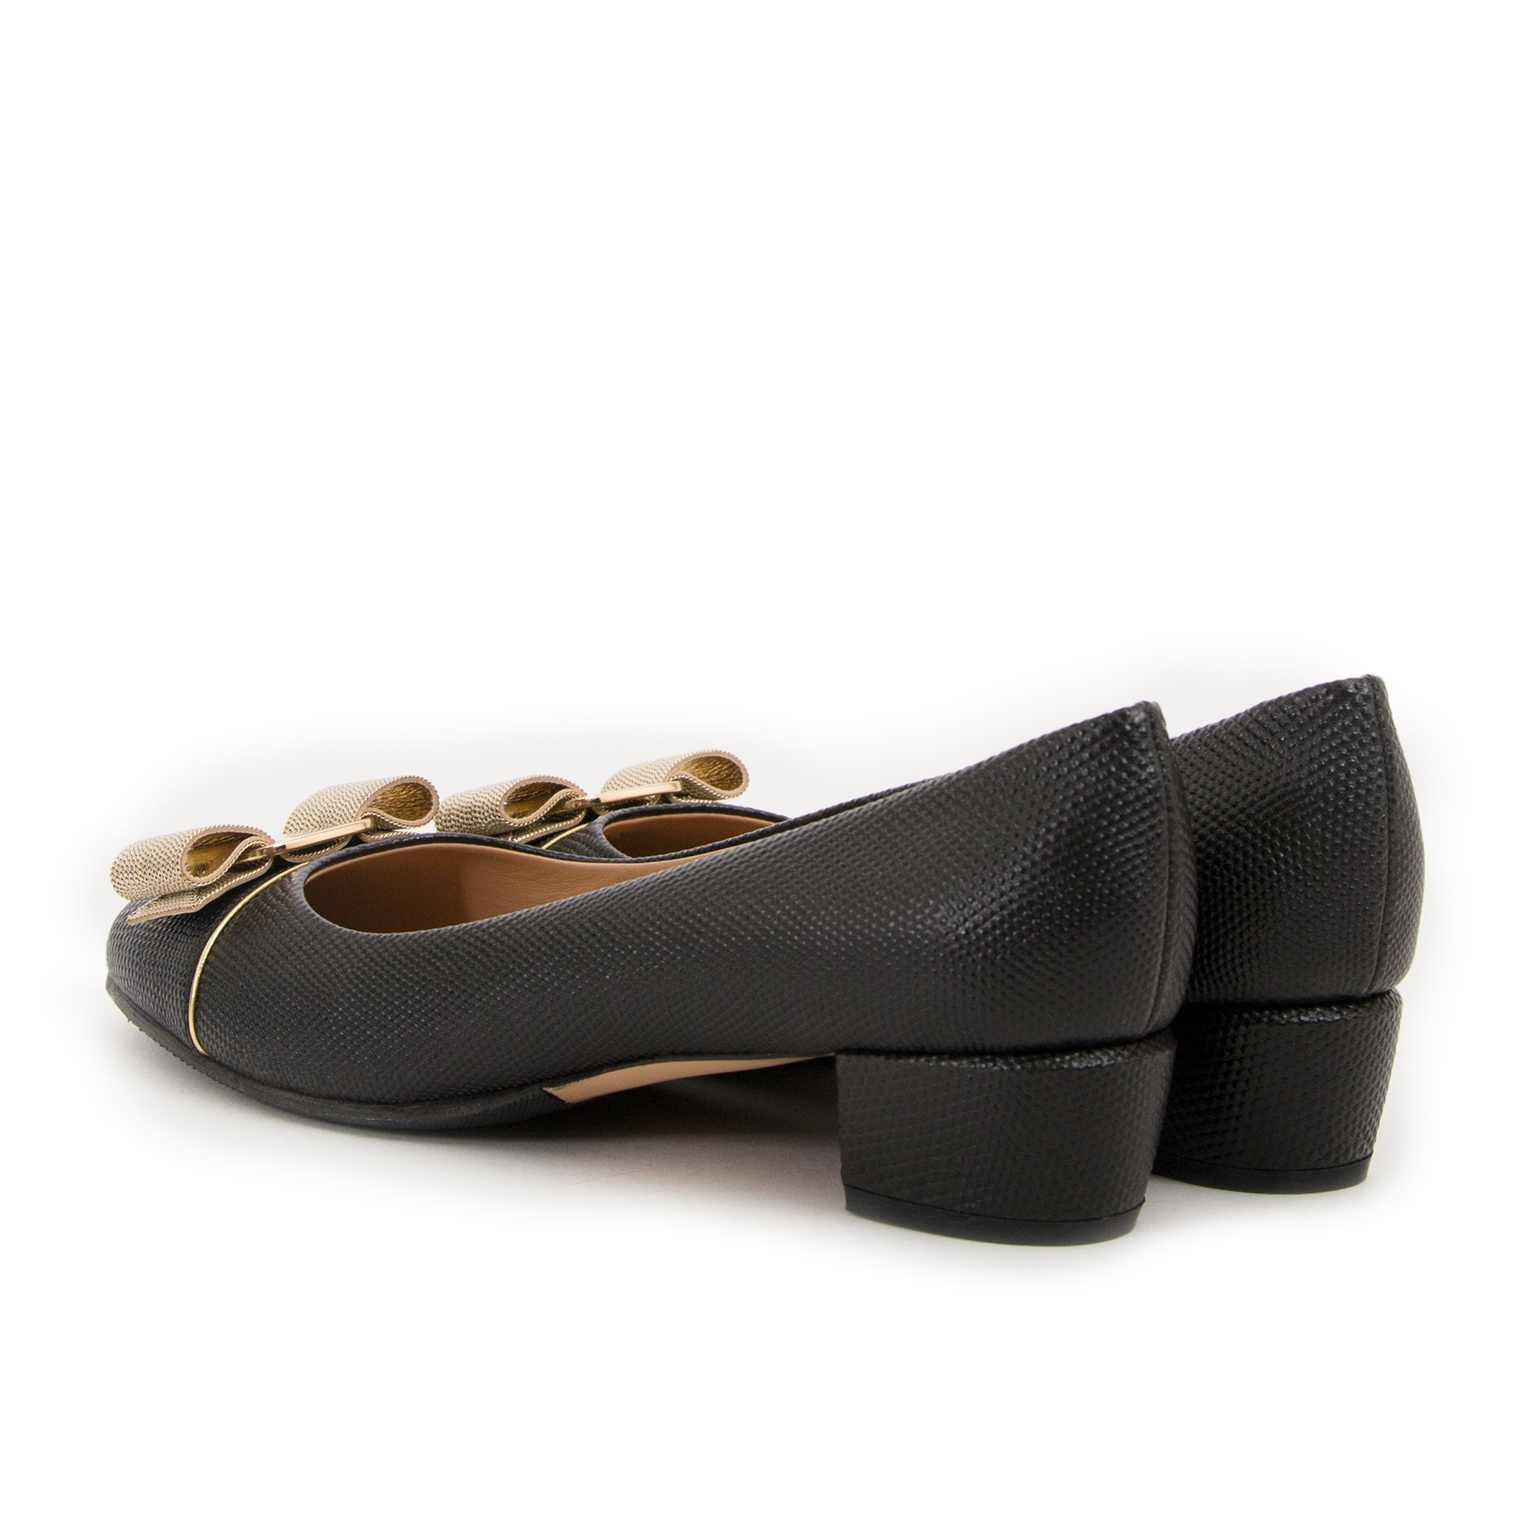 Salvatore Ferragamo Black Leather Block Heels - Size 37,5 now for sale at labellov vintage fashion webshop belgium